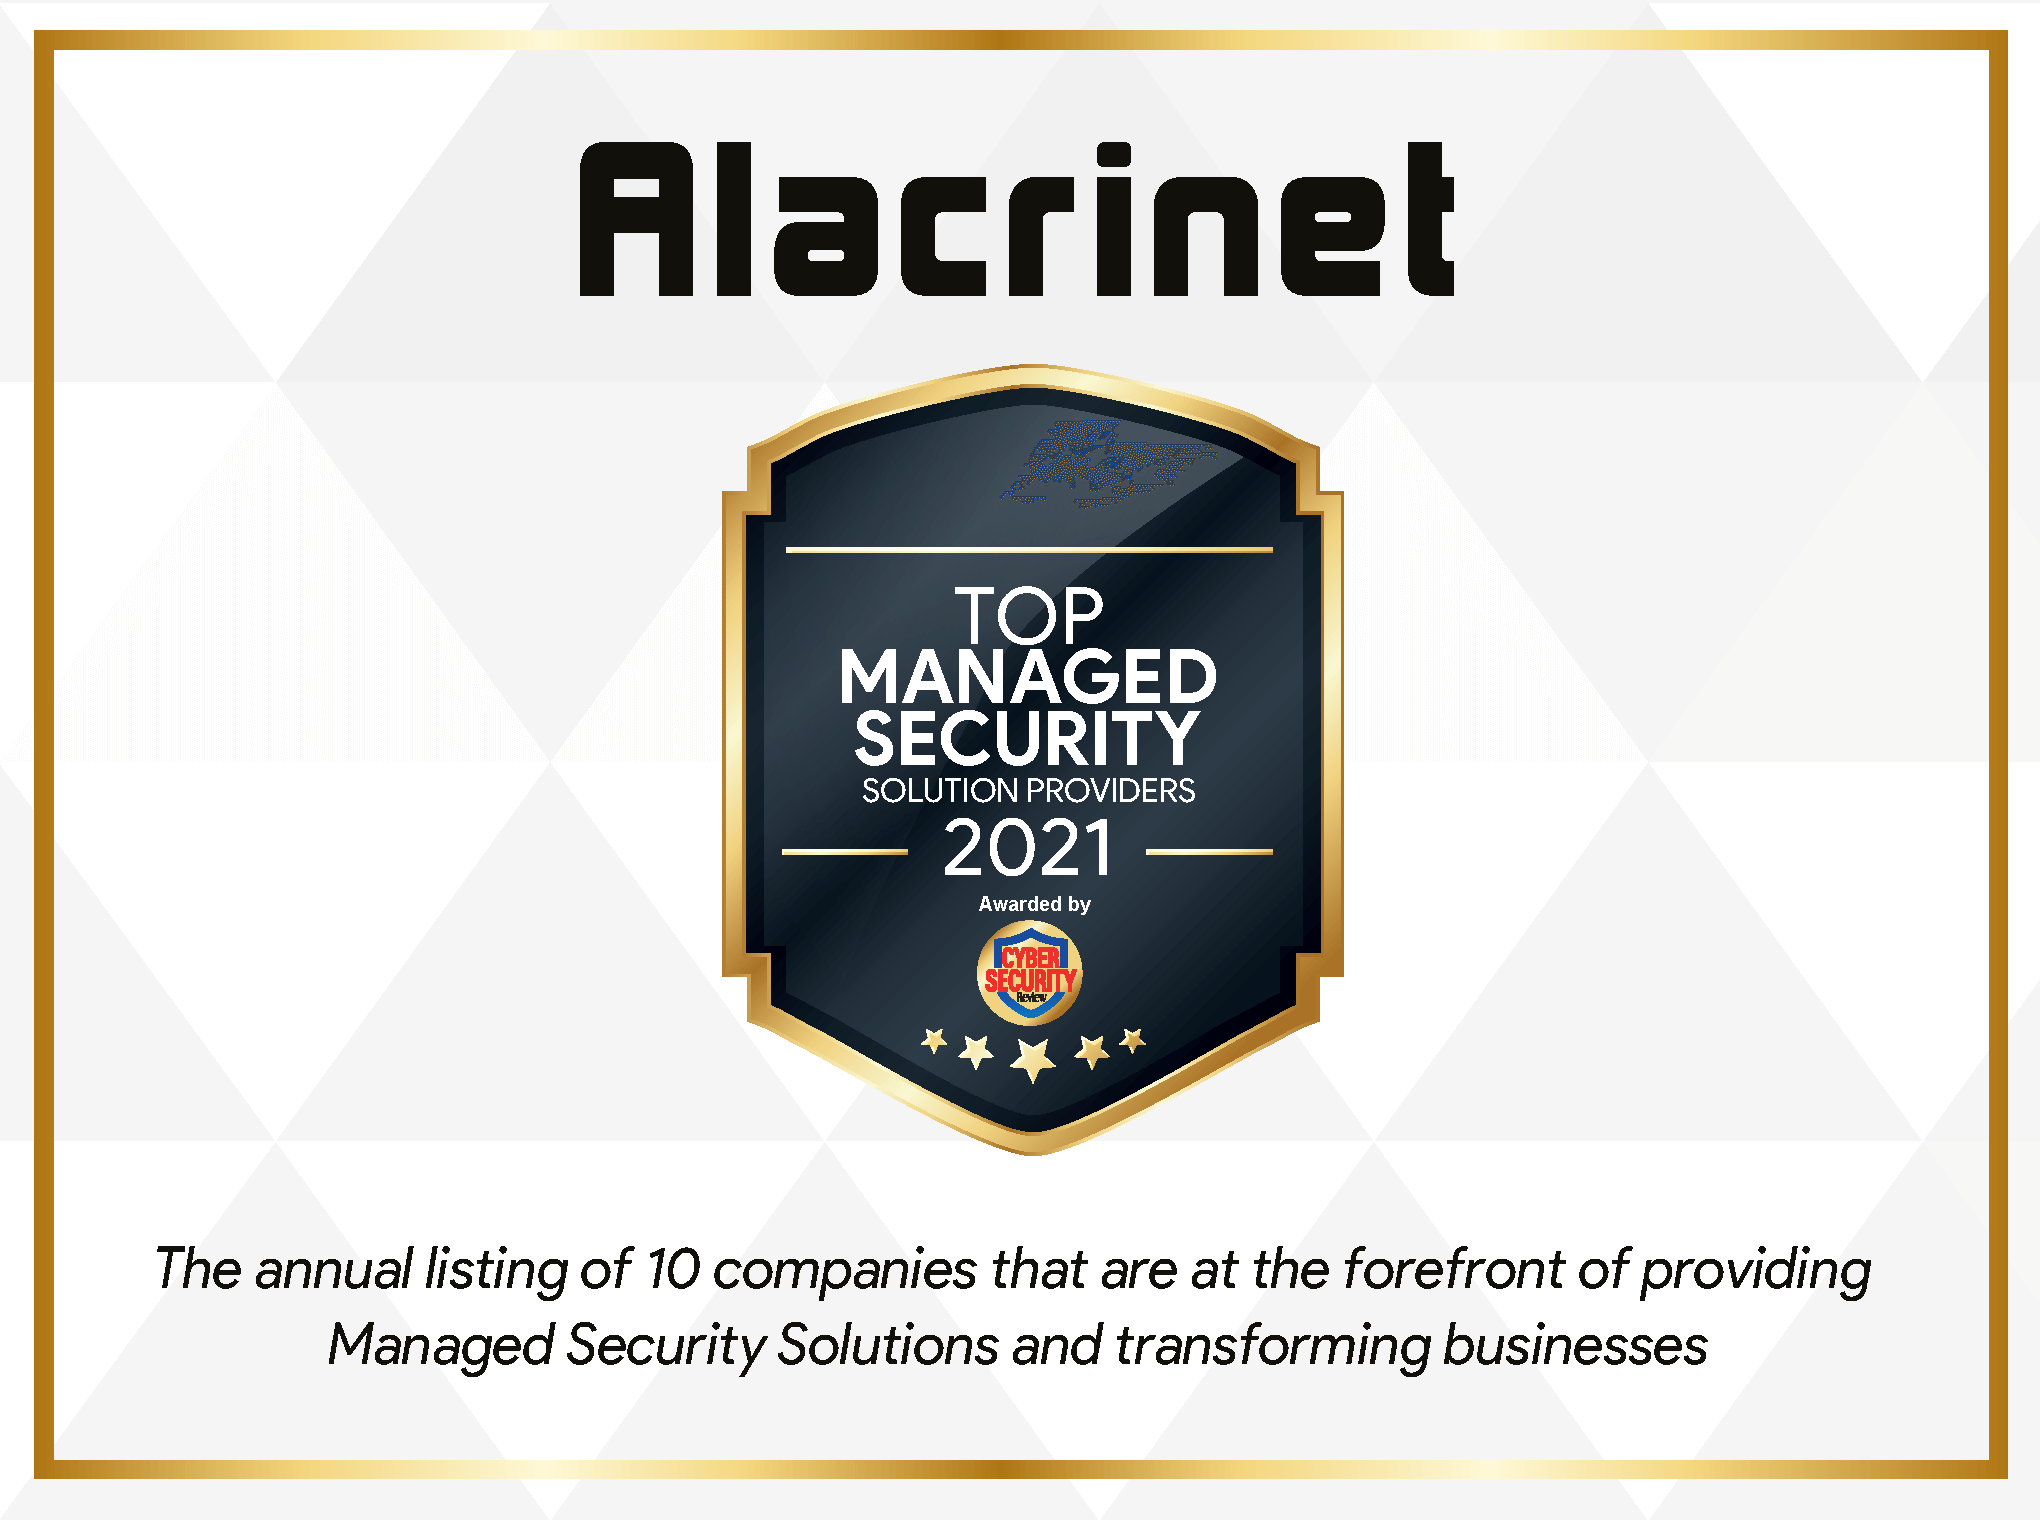 Certificate of recognition - Alacrinet is one of the Top 10 Managed Security Solution Providers of 2021